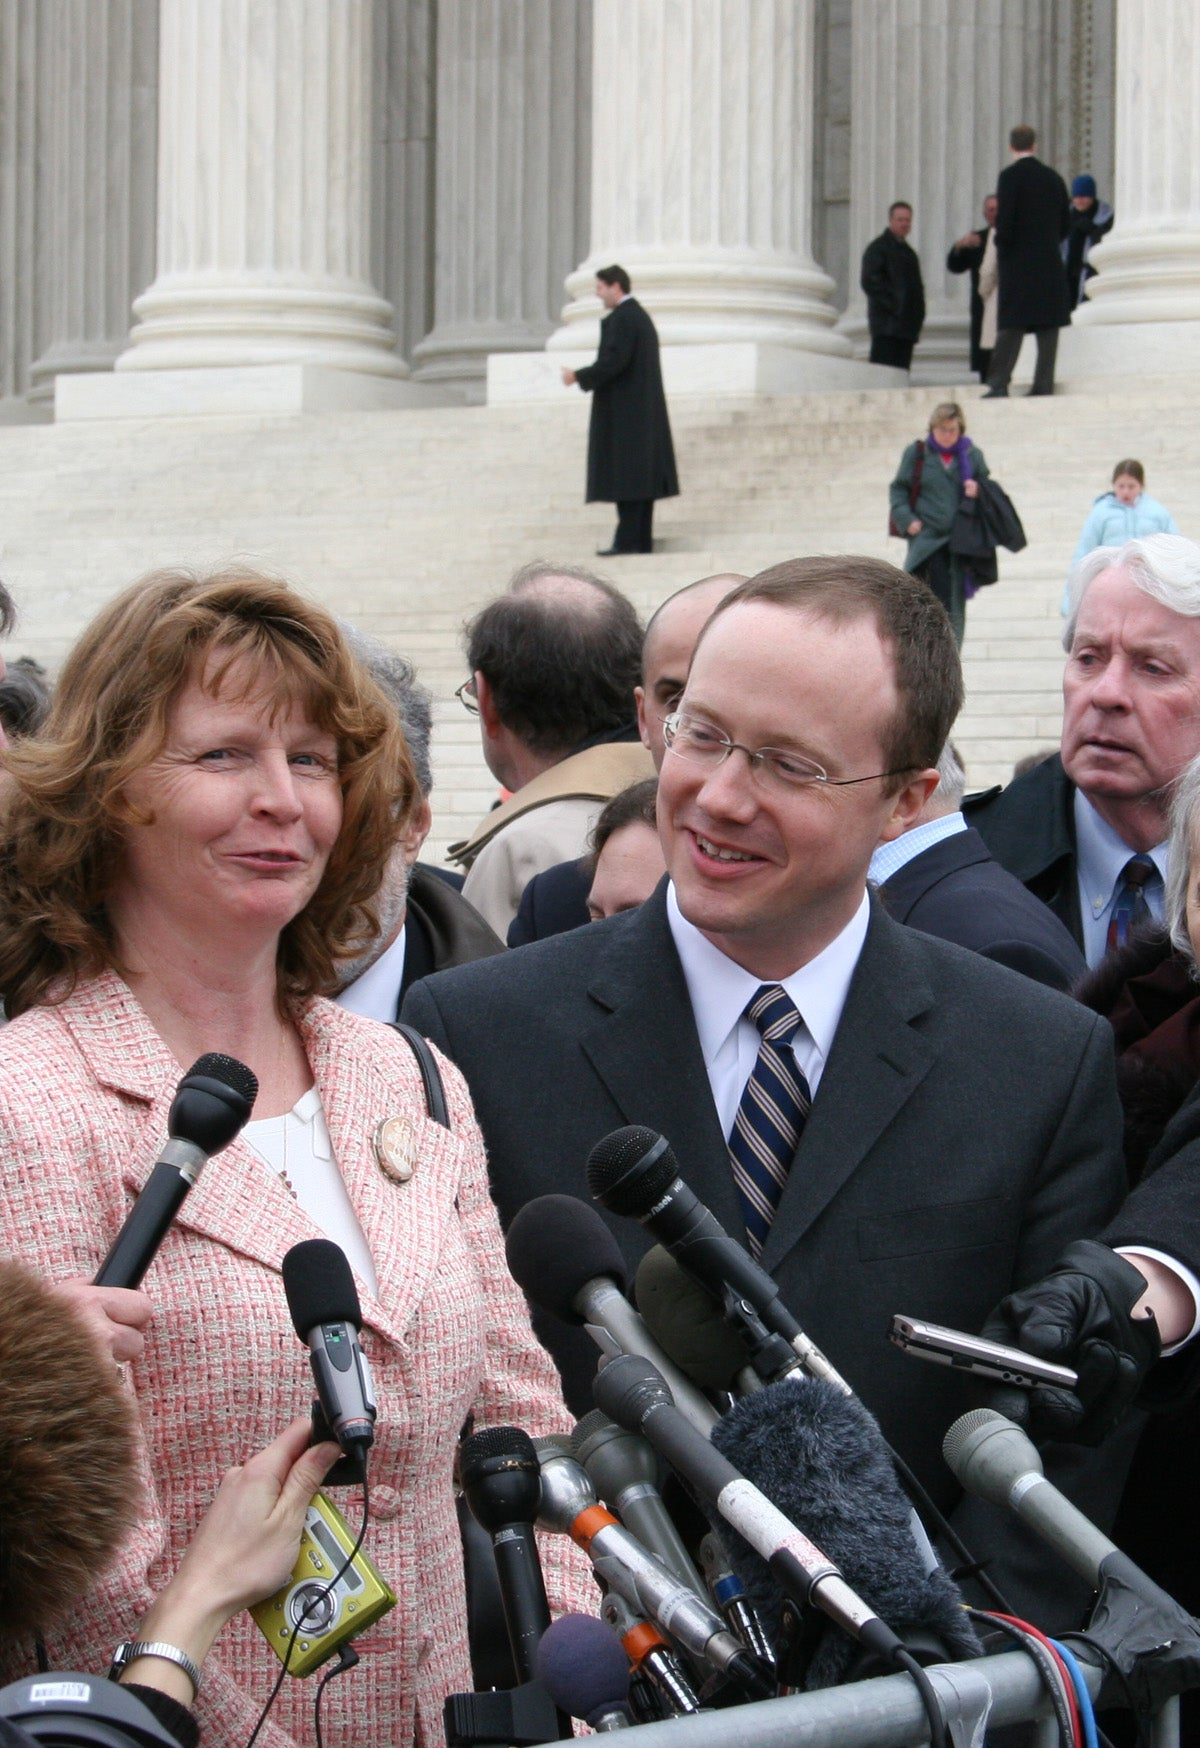 Susette Kelo and Institute for Justice lawyer Scott Bullock stand outside the Supreme Court after oral arguments in the case Kelo v. City of New London. (Photo: Institute for Justice)